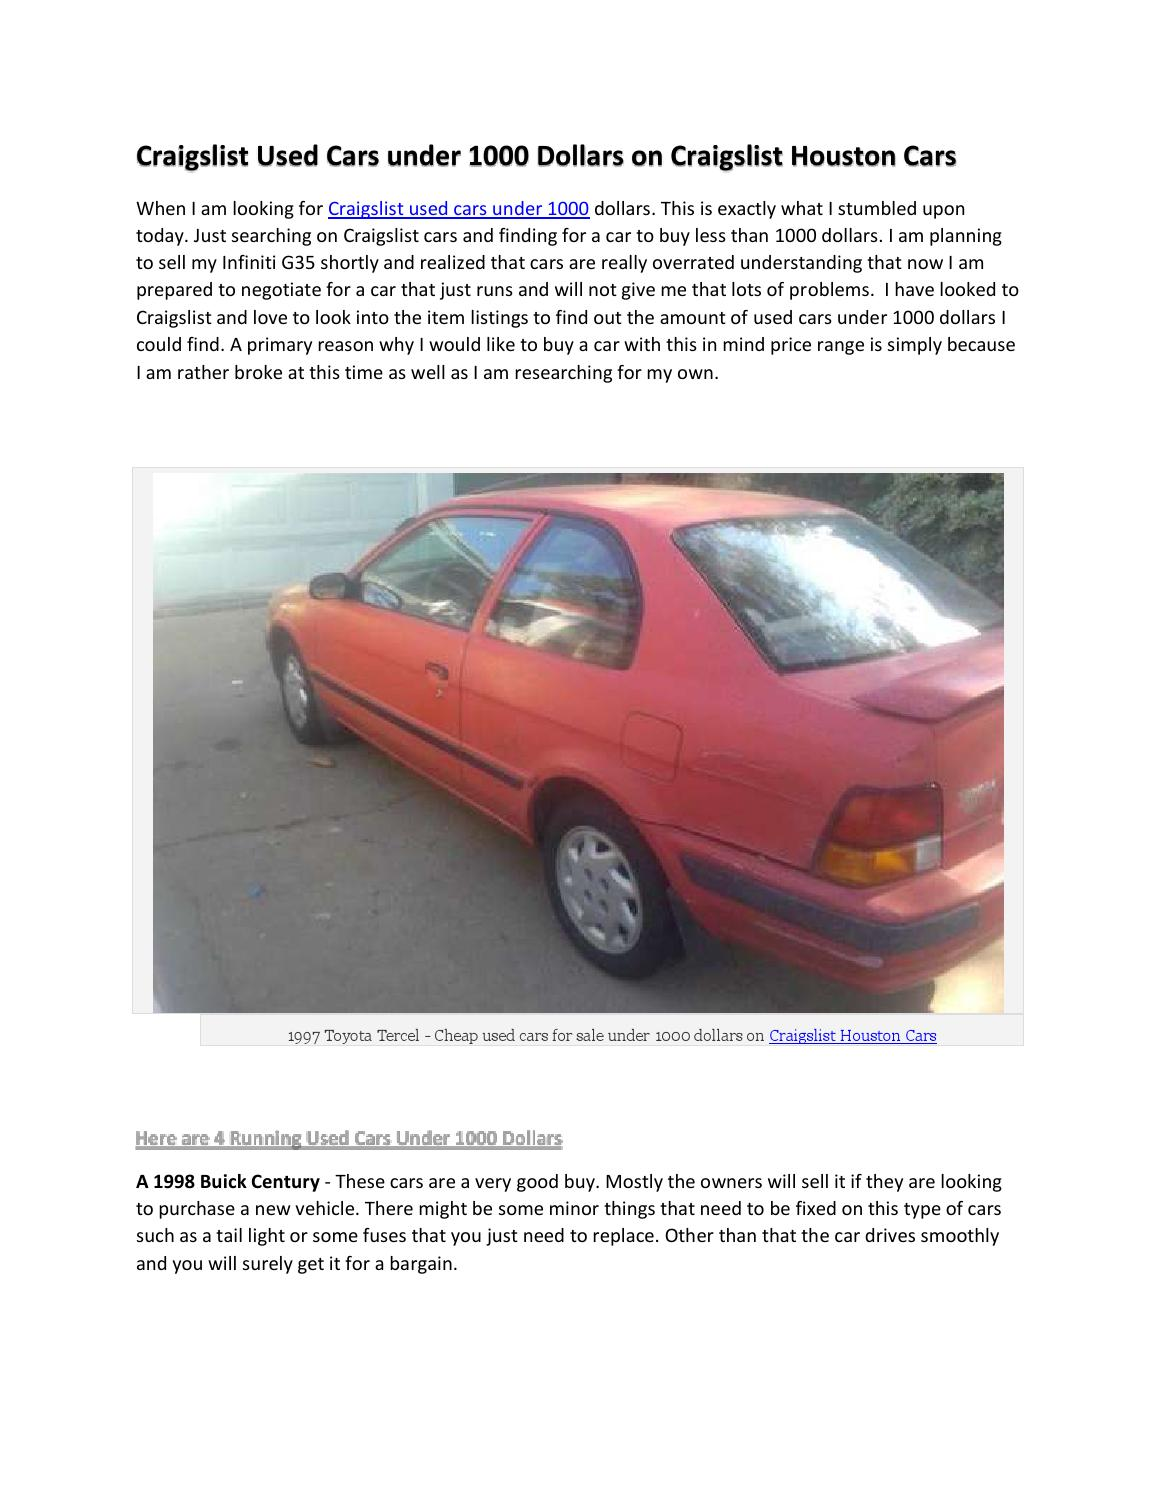 Craigslist Austin Texas Cars For Sale By Owner : craigslist, austin, texas, owner, Craigslist, Houston, Owner